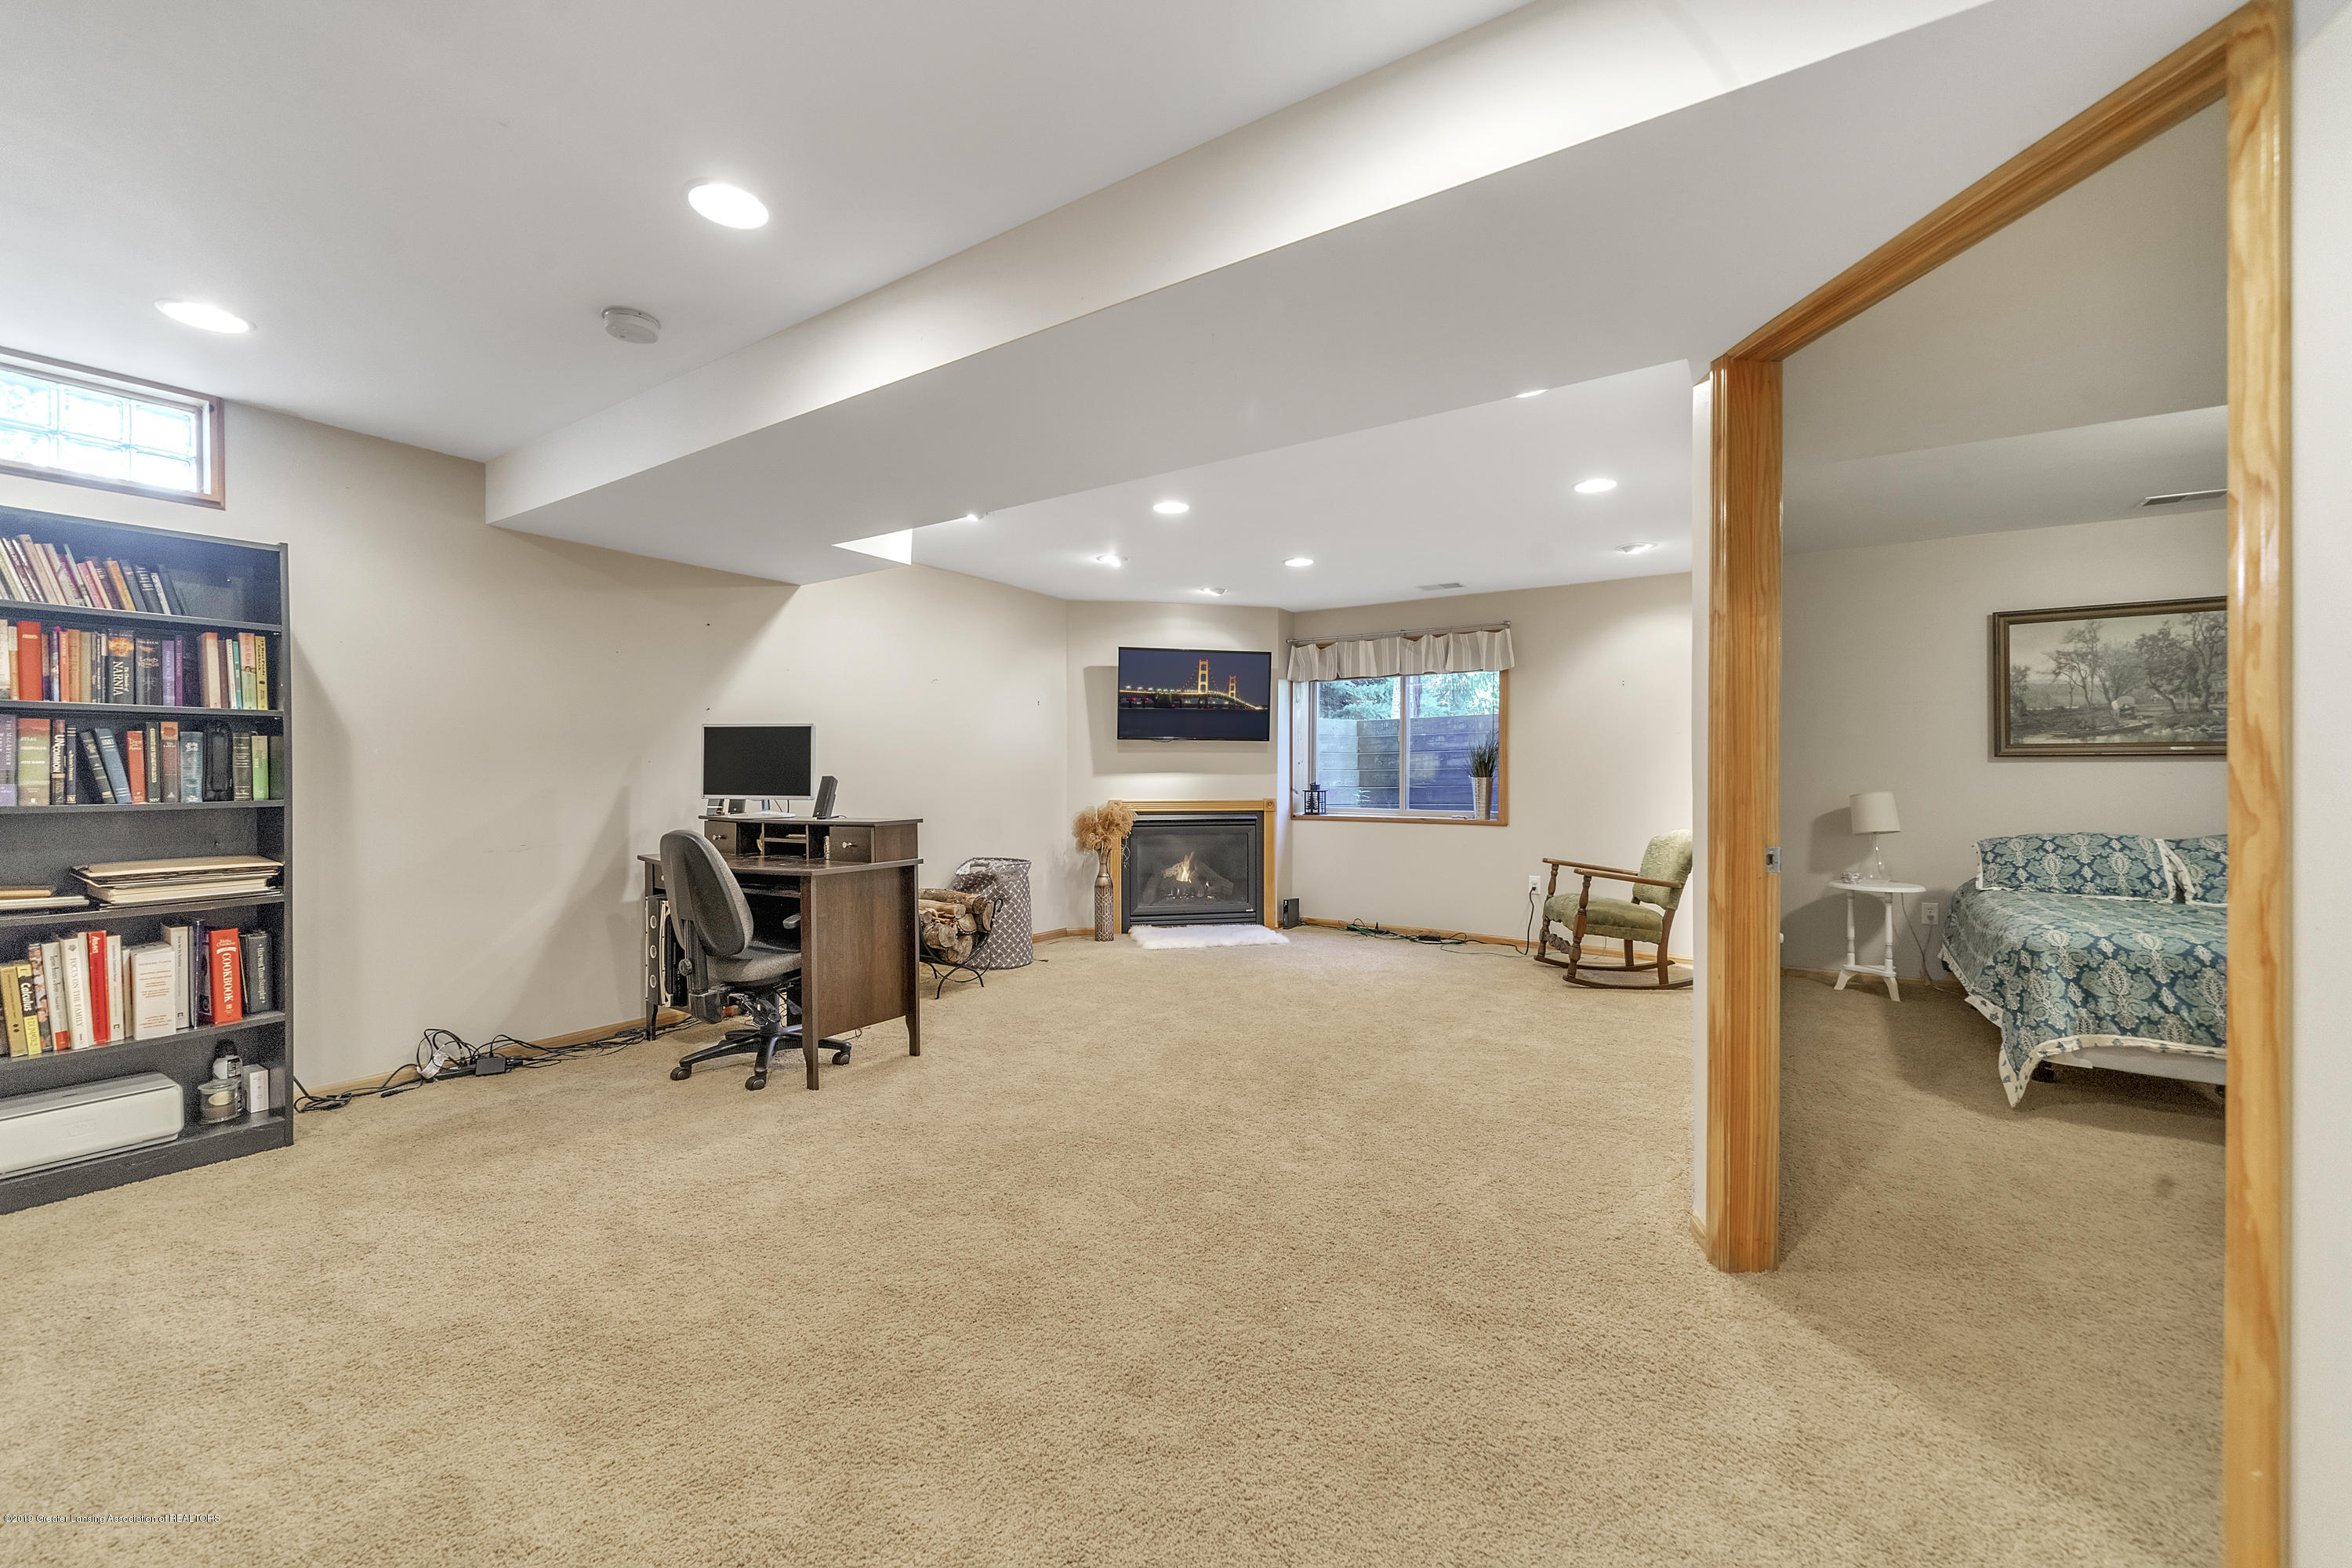 1258 Sumac Ln - 1258-Sumac-WindowStill-Real-Estate-Photo - 23